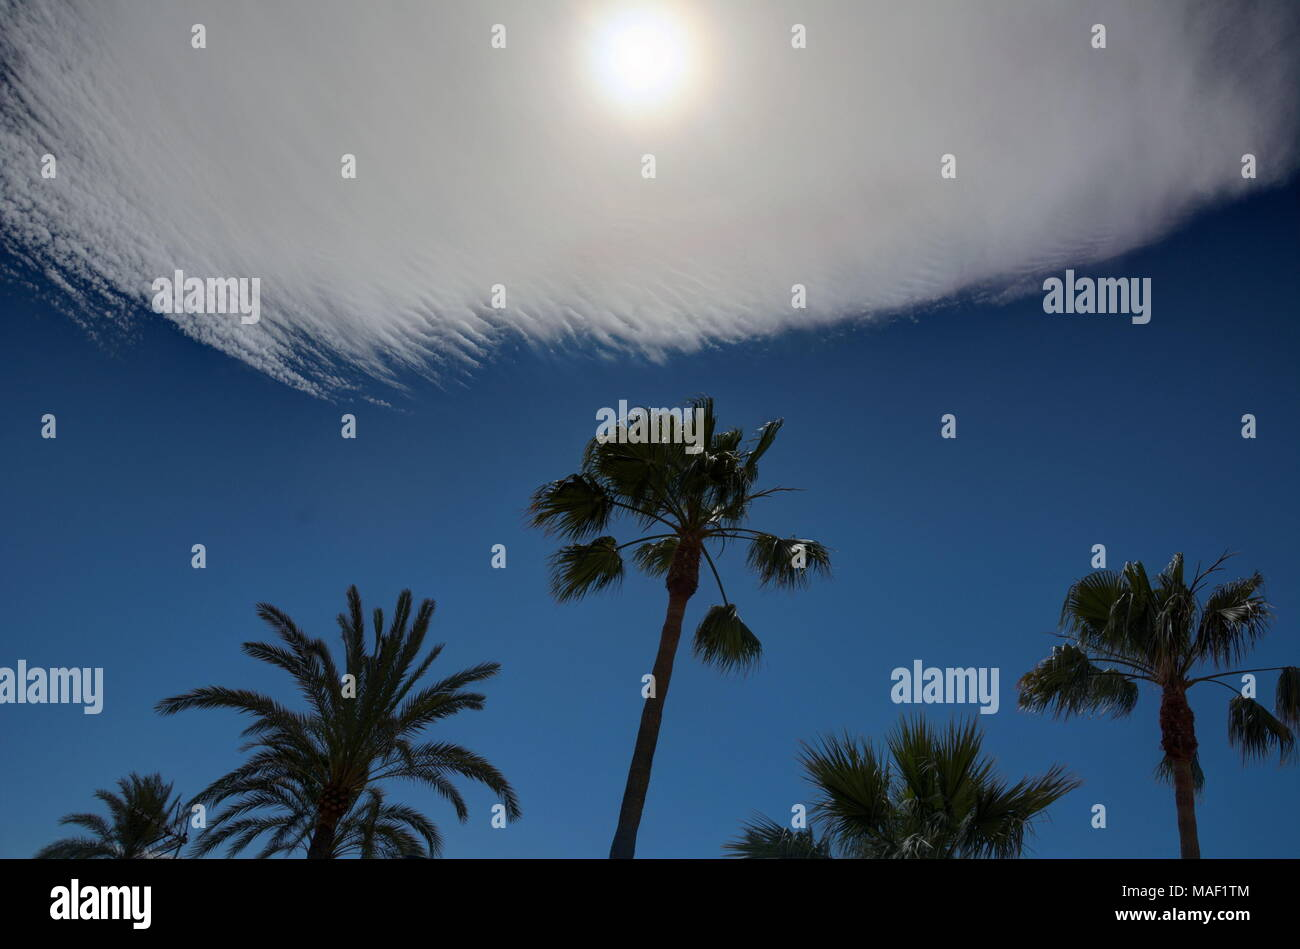 Palm trees silhouetted against a blue sky with an unusual cloud formation and a hazy sun. - Stock Image